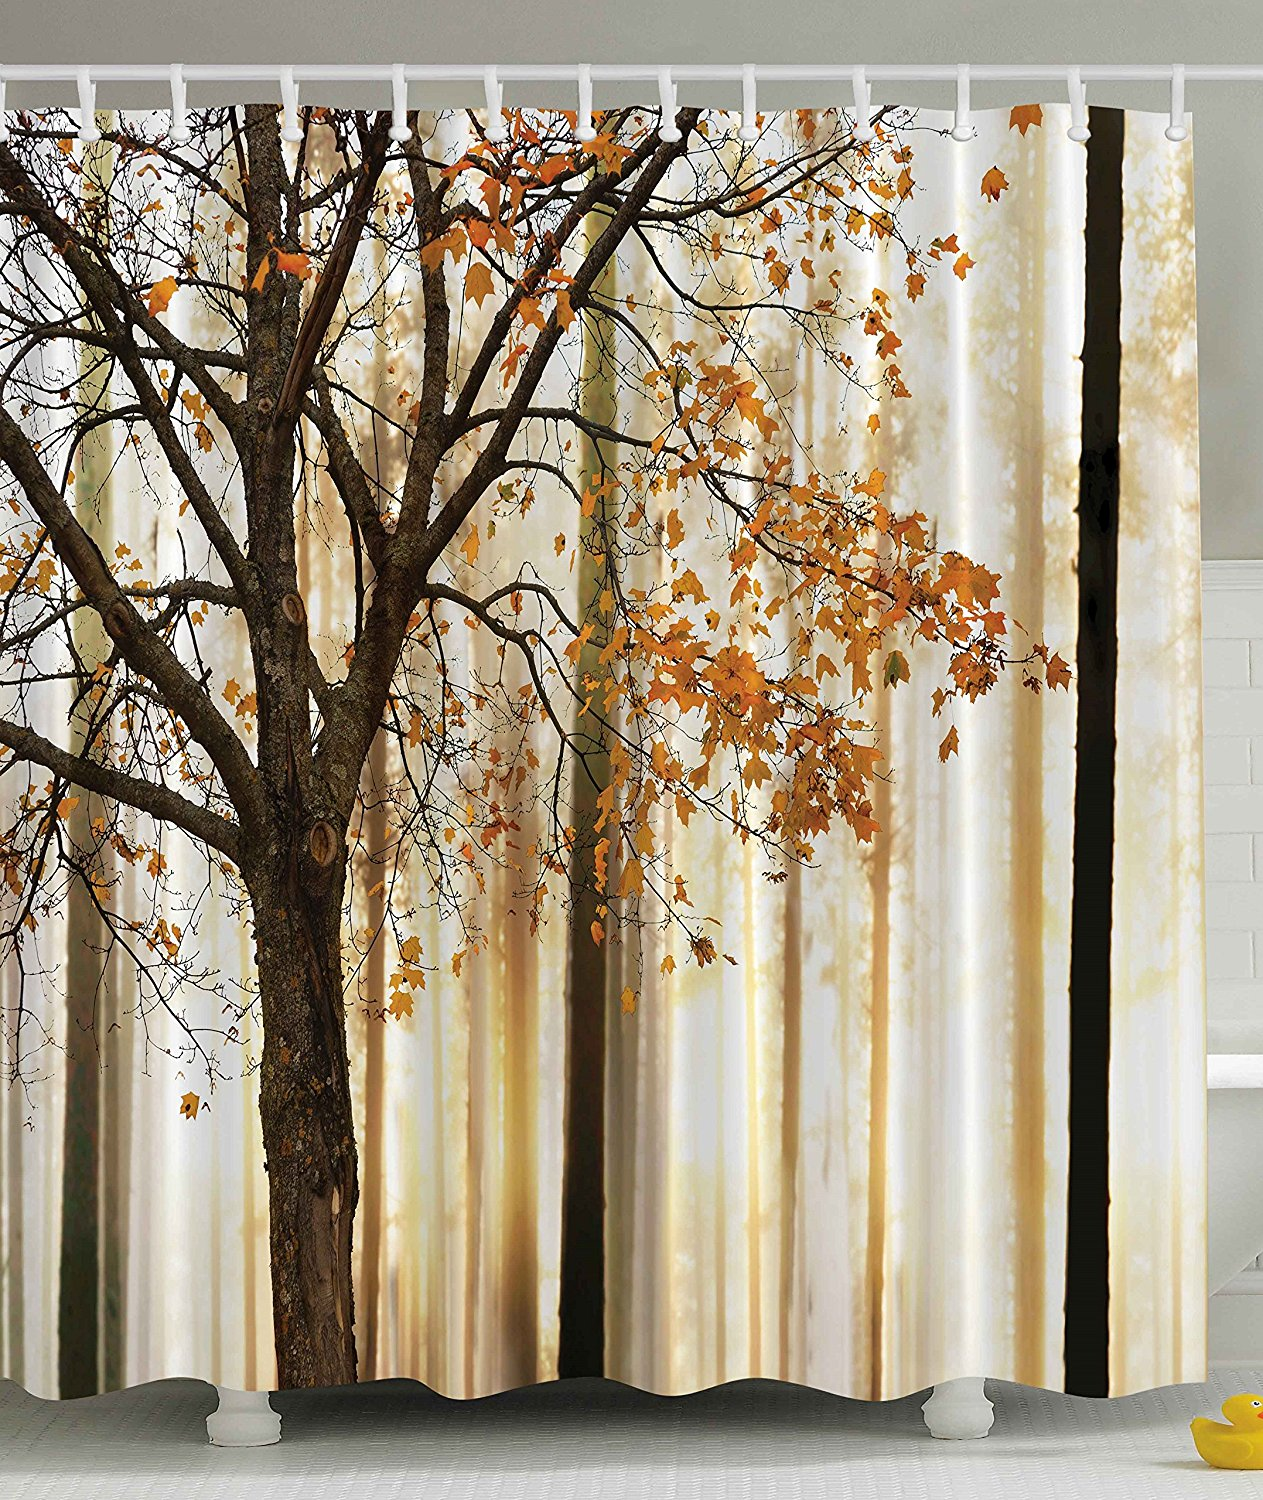 Fall Tree Shower Curtain Autumn Brown Bath Decor | GoJeek